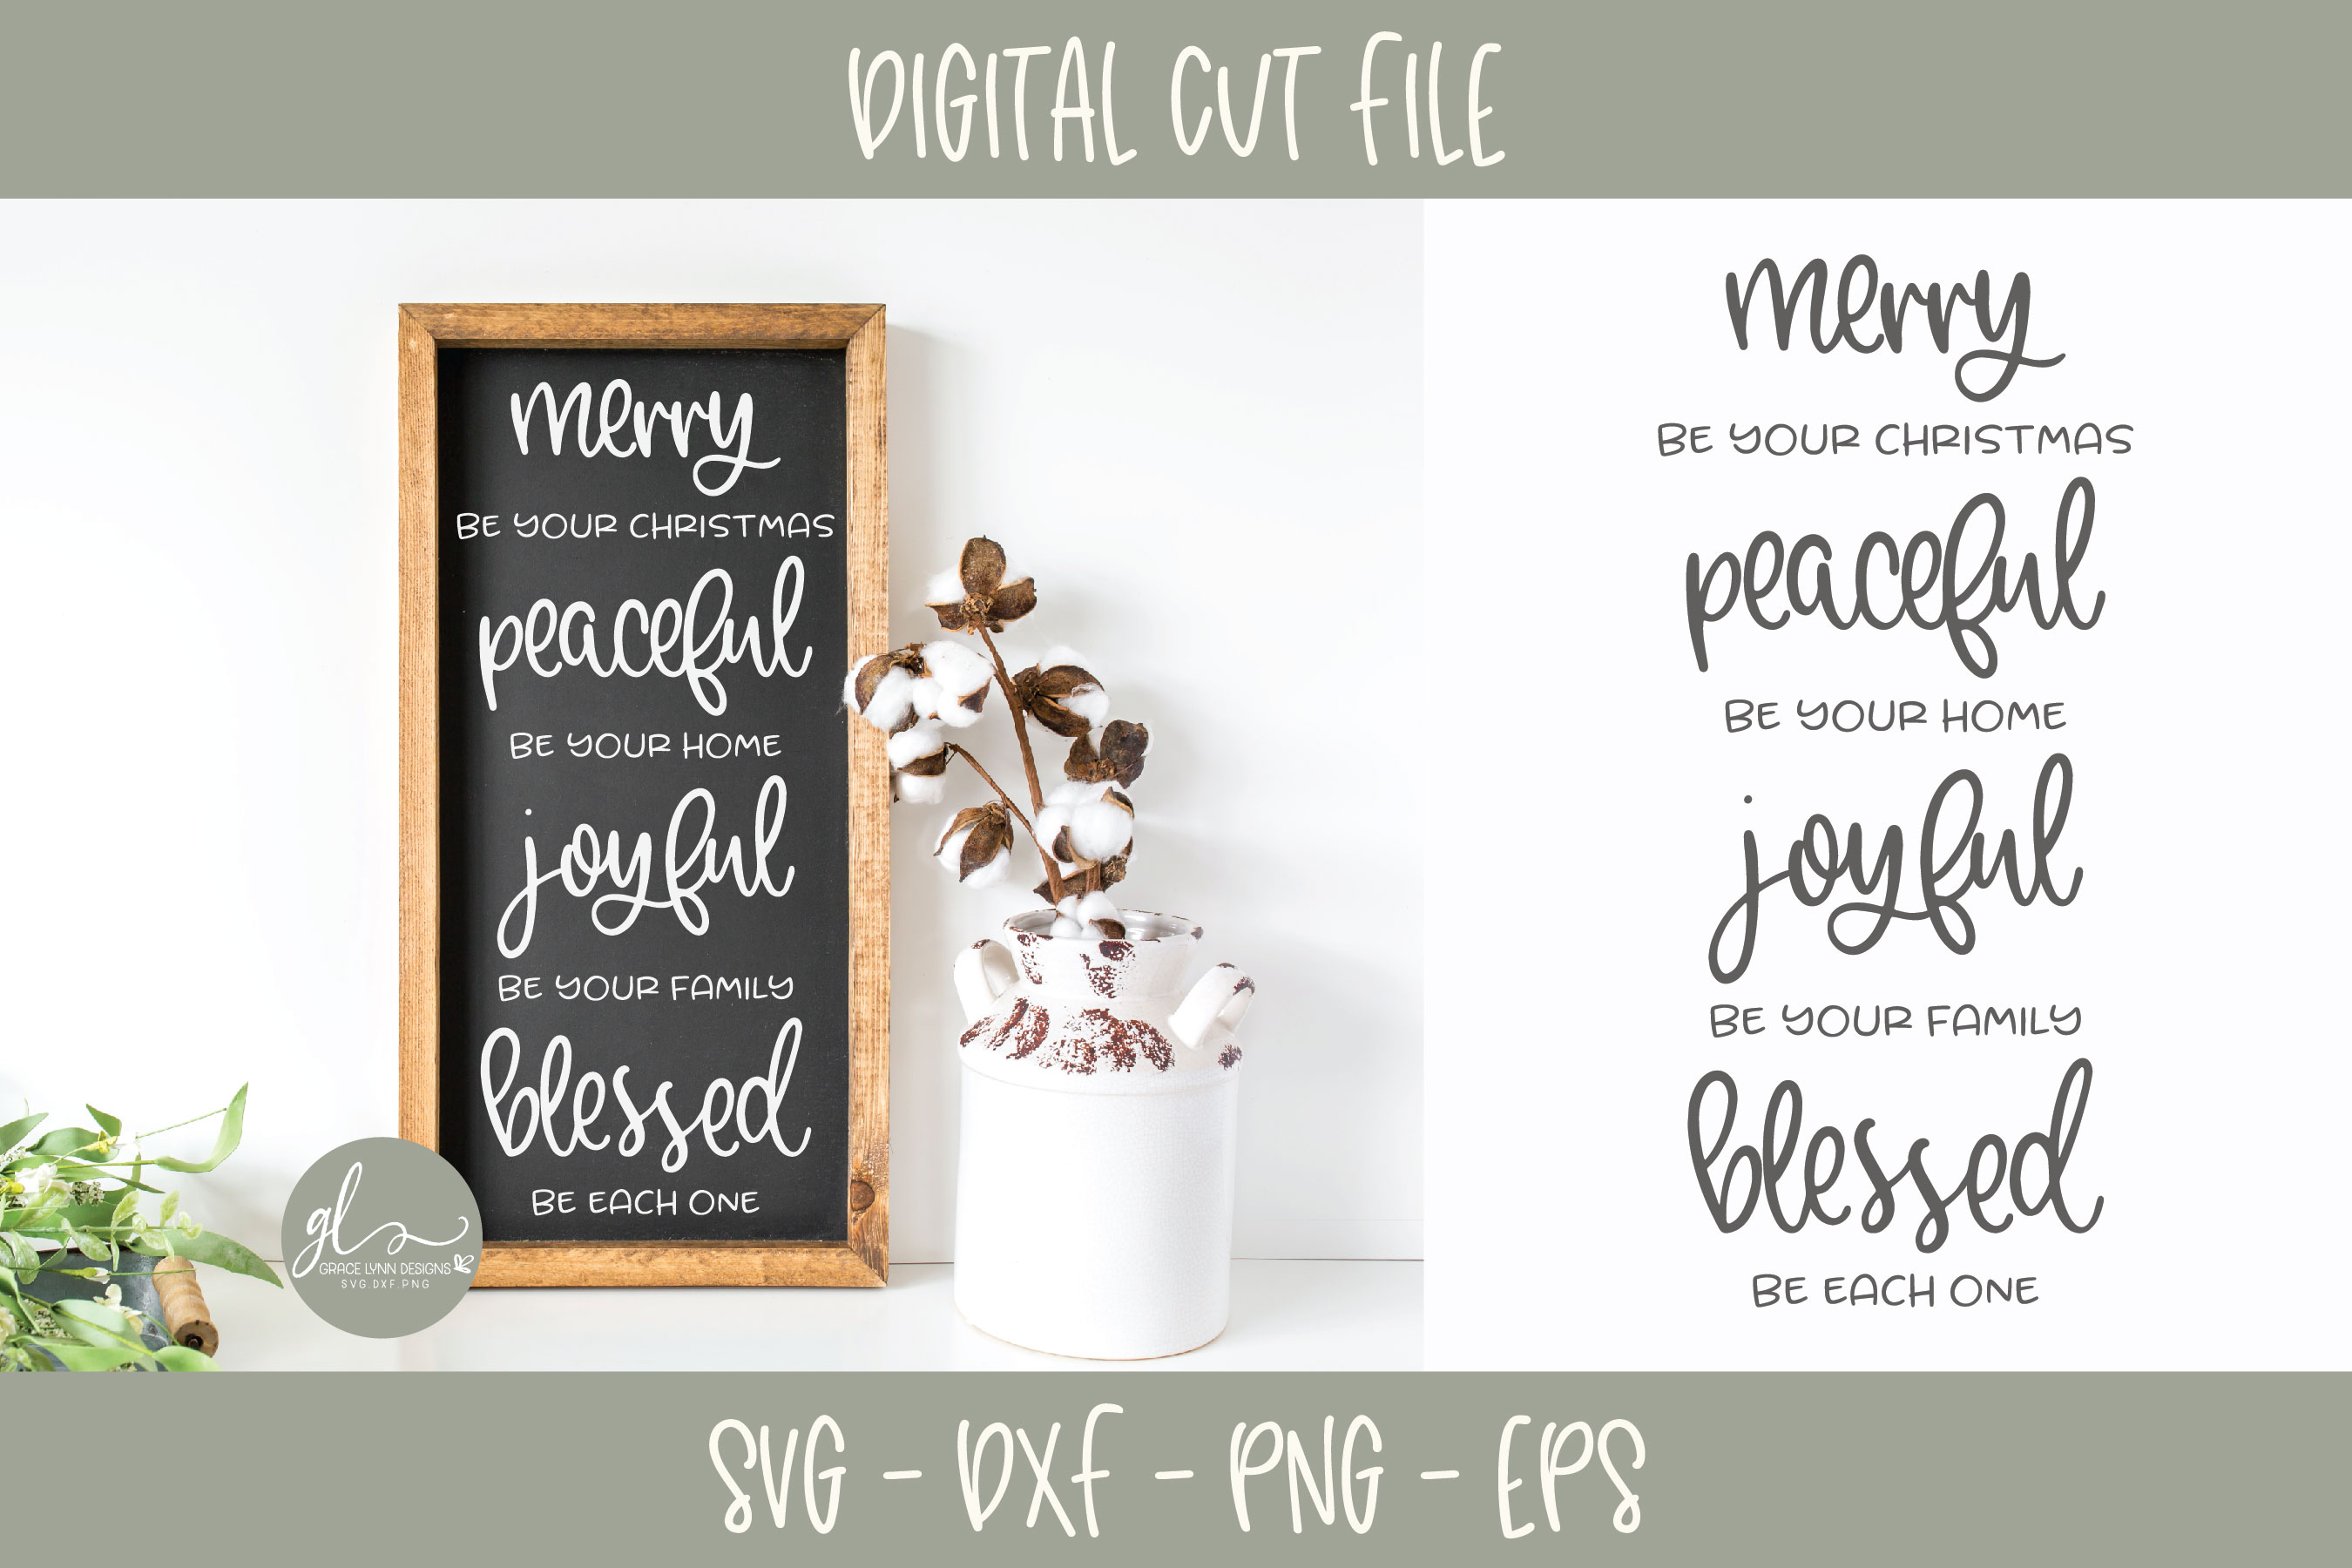 Merry Be Your Christmas Peaceful Be Your Home - SVG example image 2